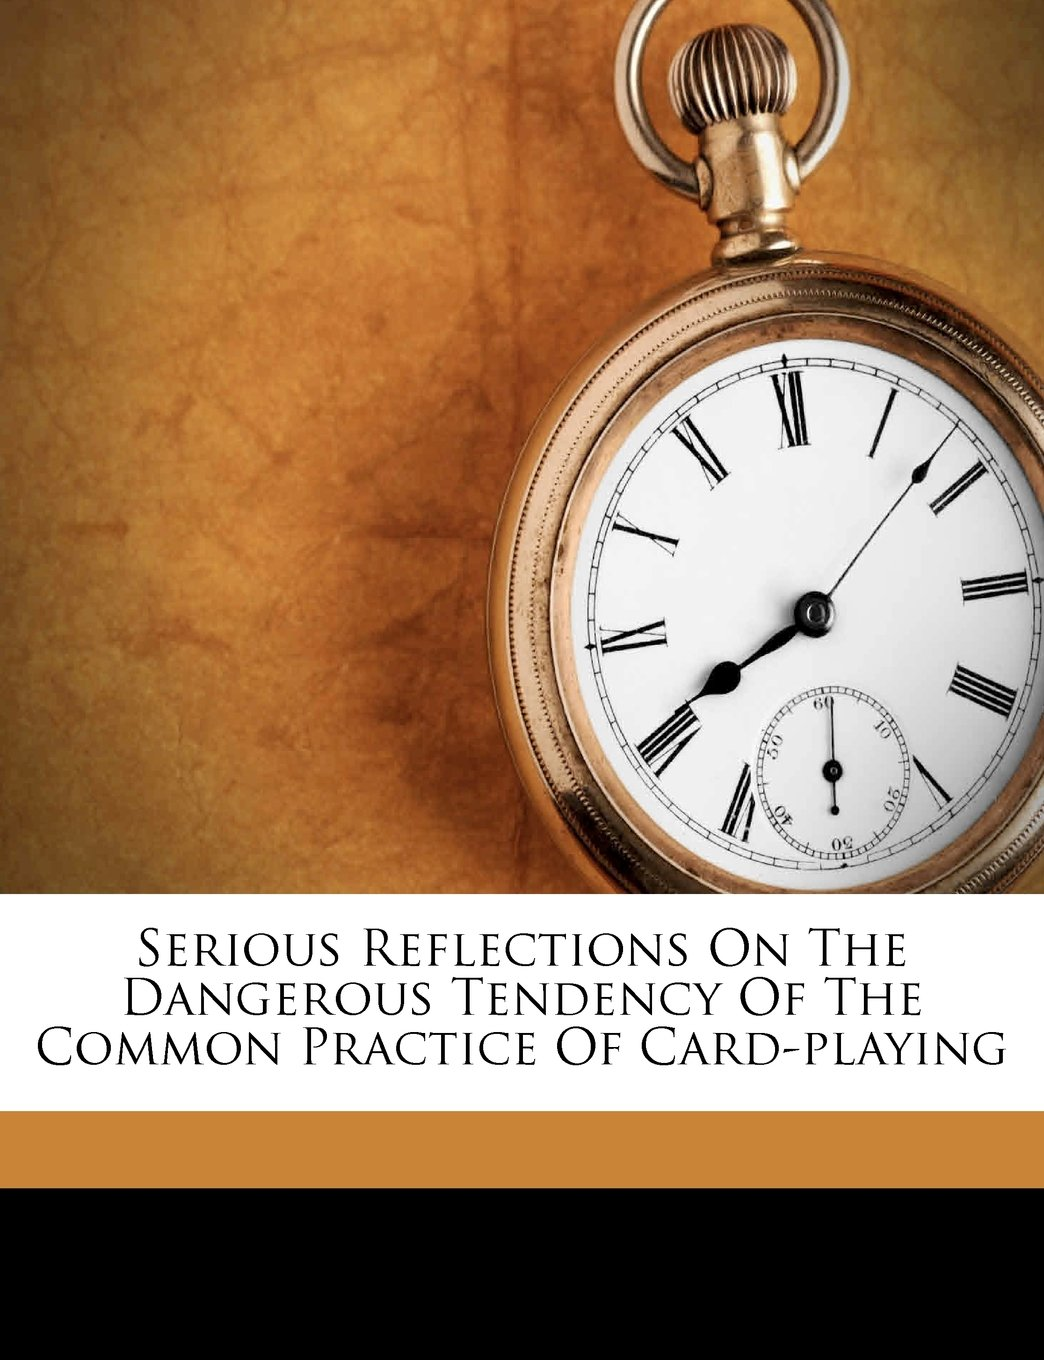 Serious Reflections On The Dangerous Tendency Of The Common Practice Of Card-playing pdf epub